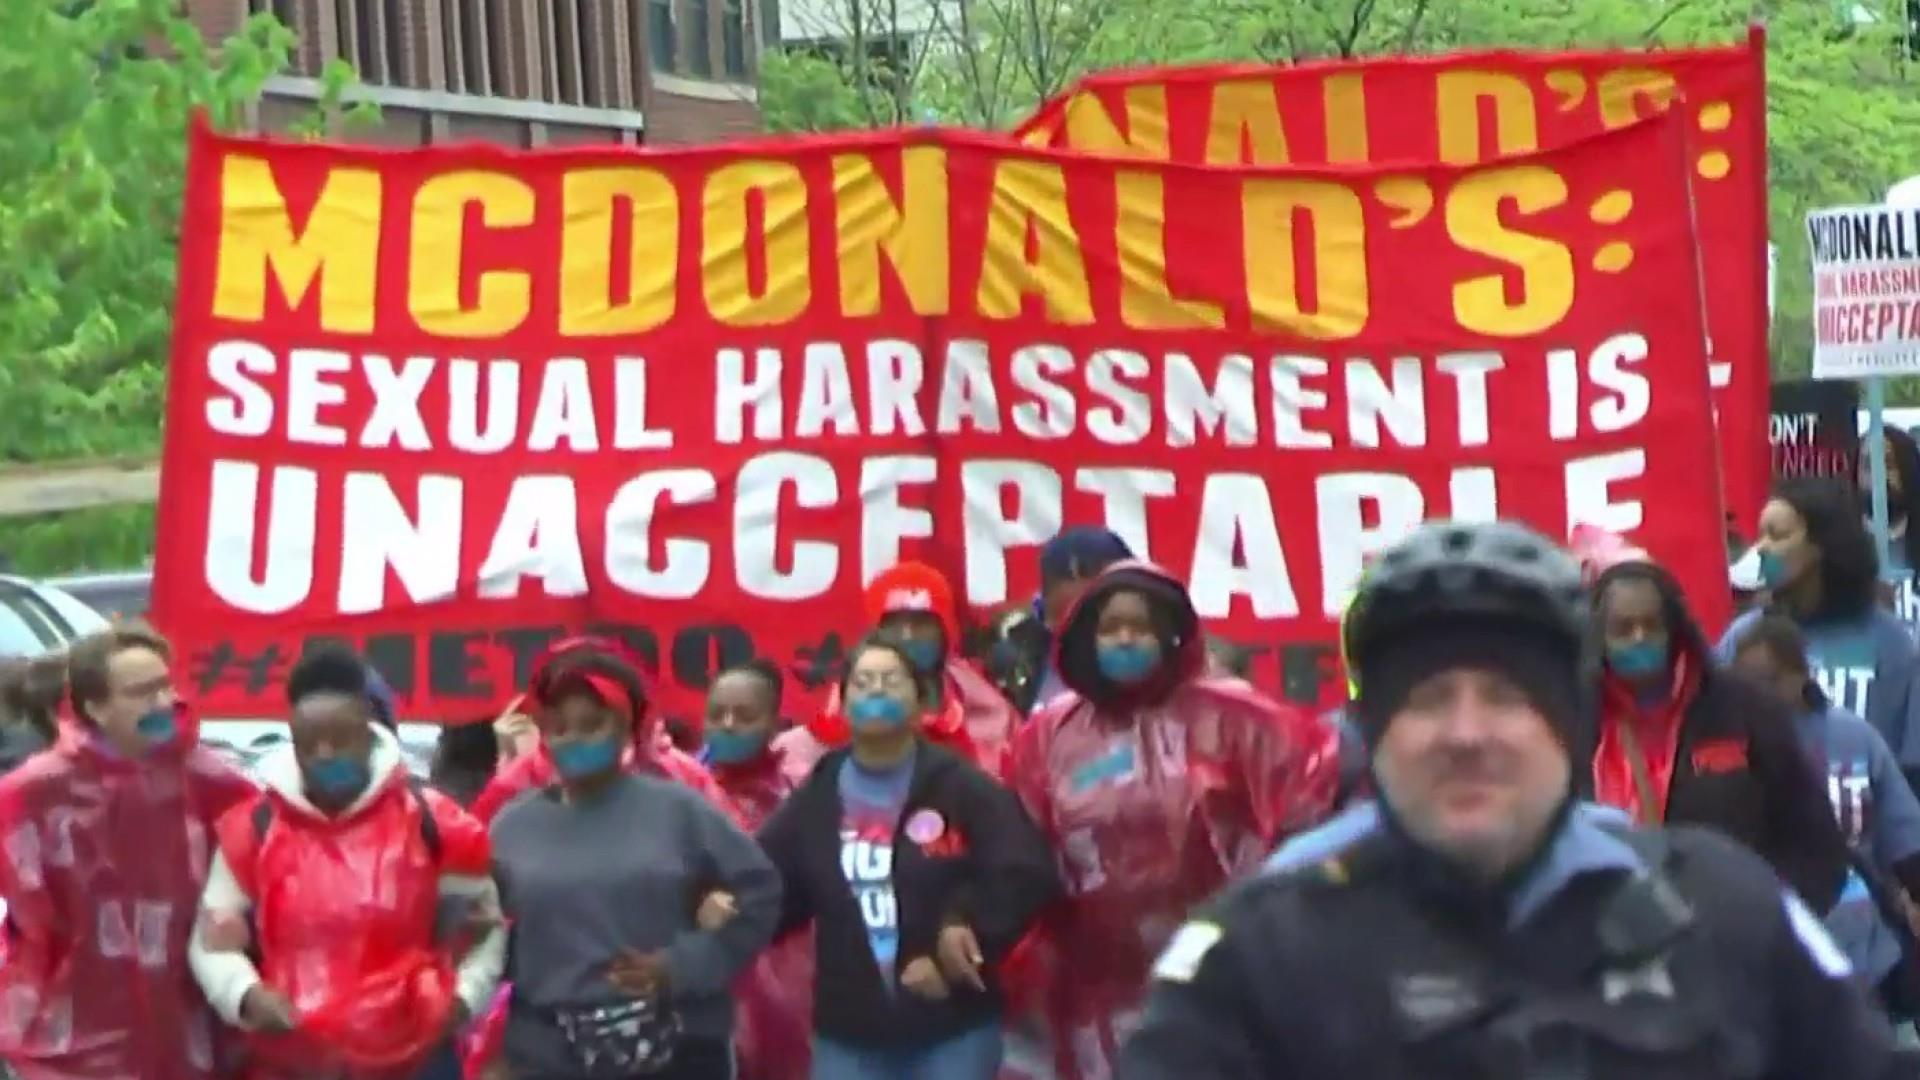 More than 2 dozen McDonald's workers say they were sexually harassed